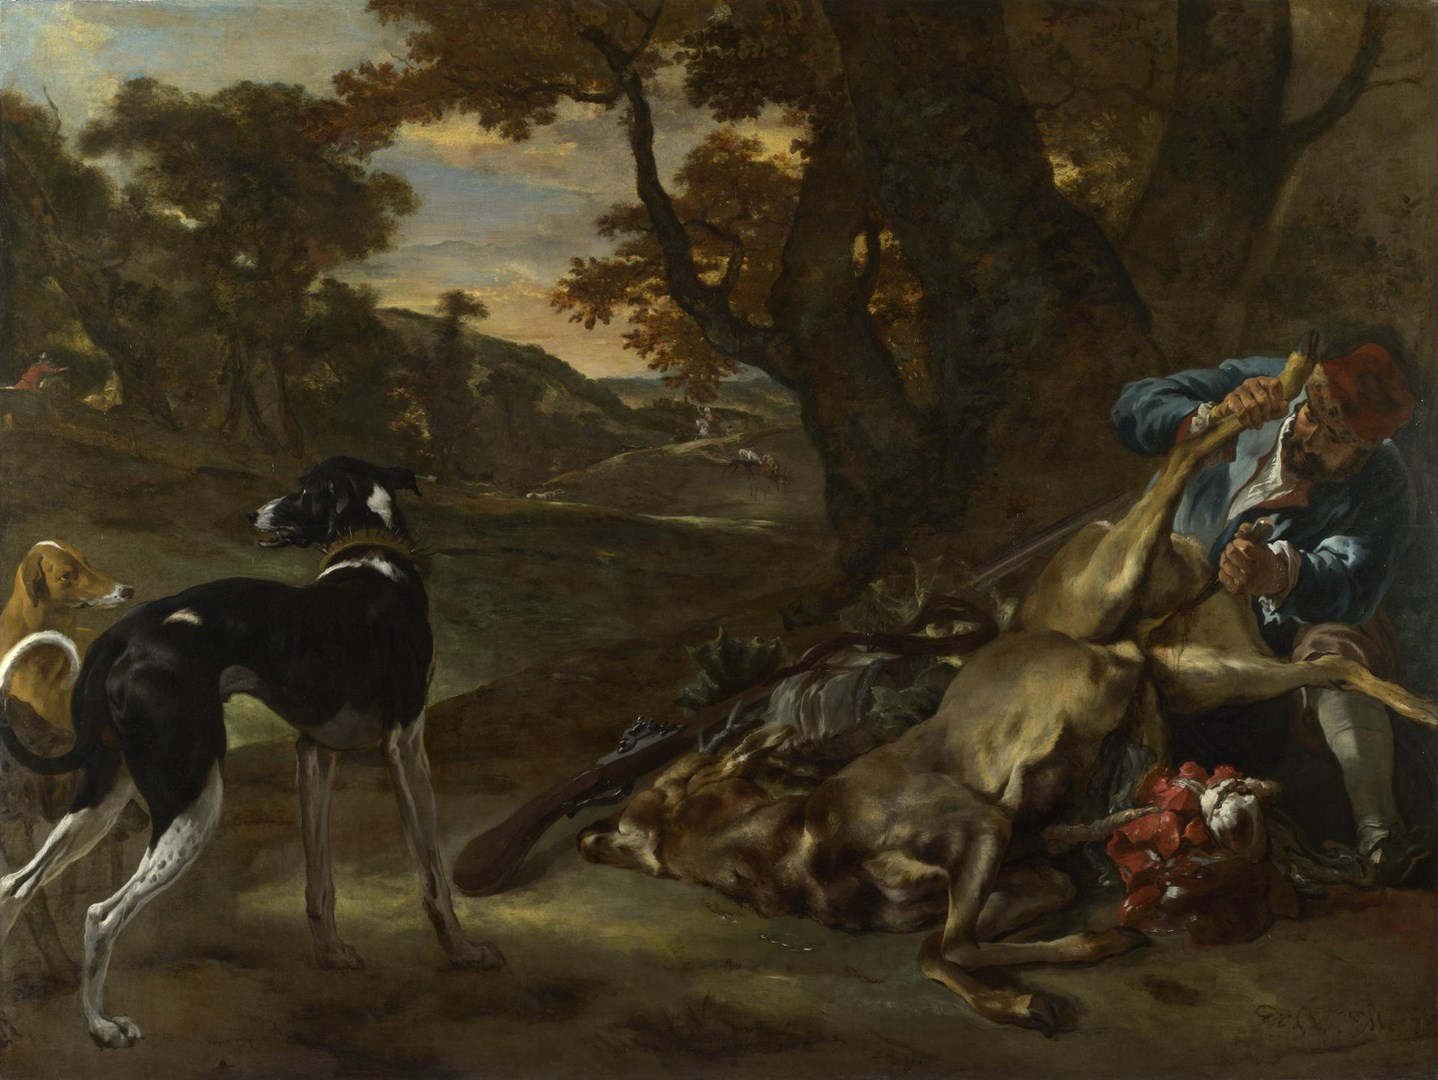 A Huntsman cutting up a Dead Deer, with Two Deerhounds by Jan Baptist Weenix